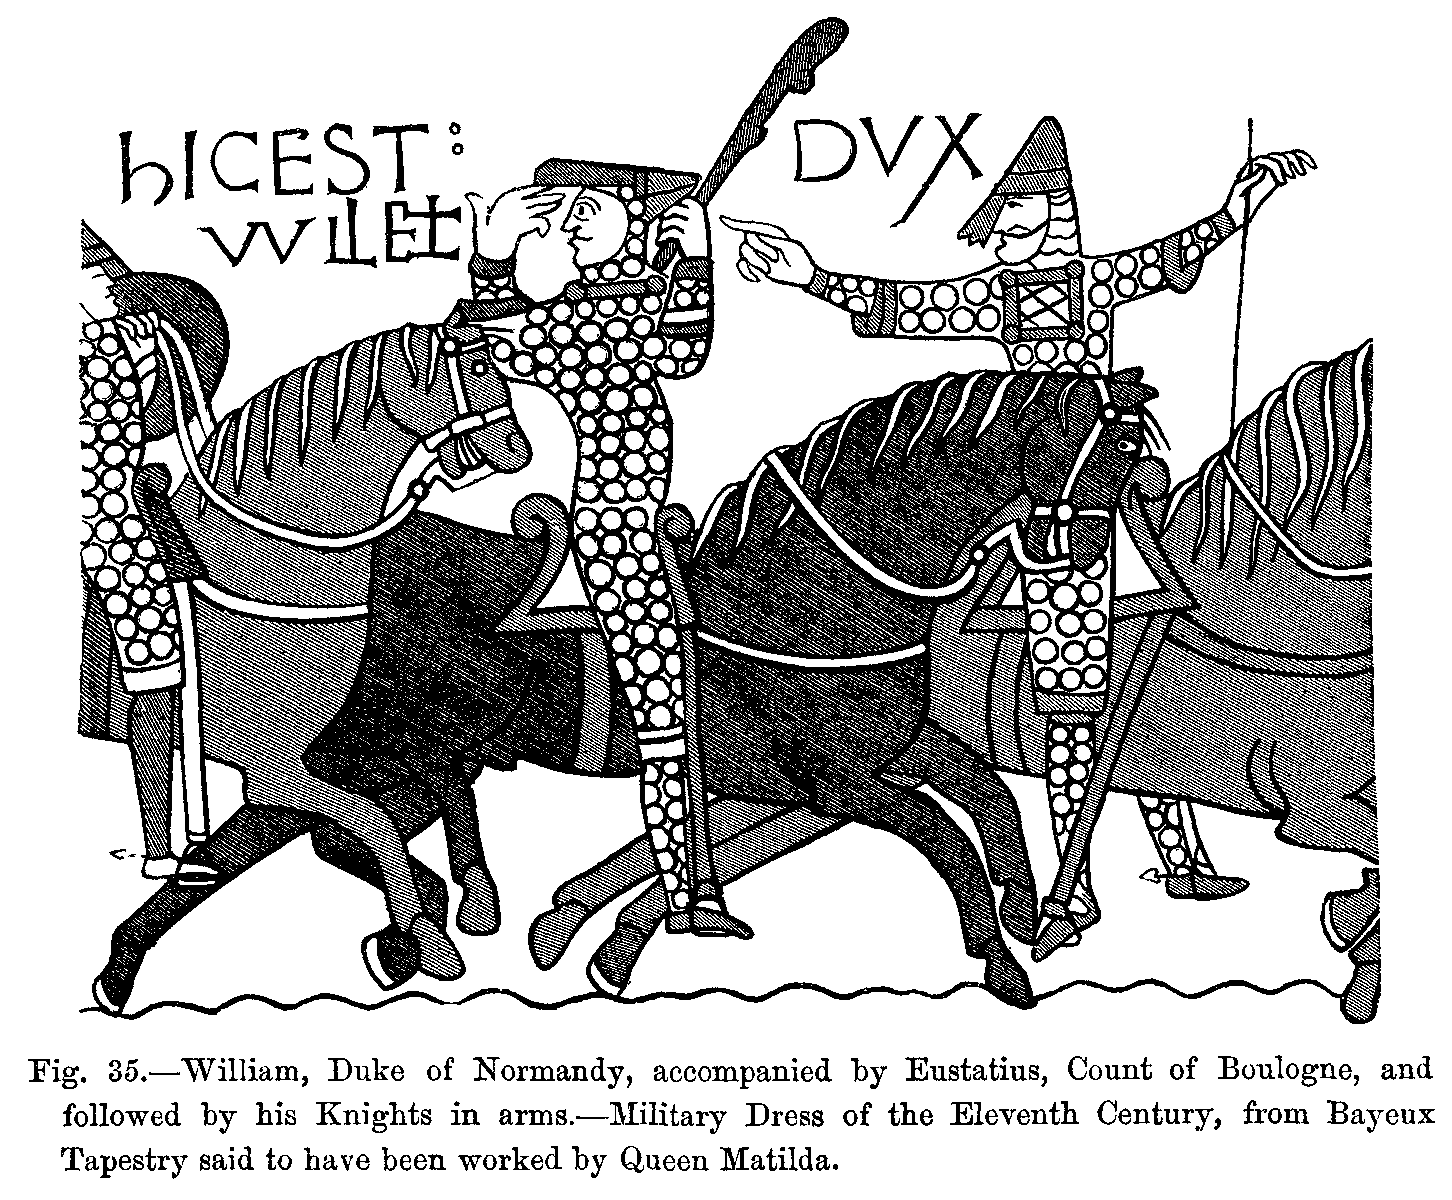 William_Duke_of_Normandy_accompanied_by_Eustatius_Count_of_Boulogne_and_followed_by_his_Knights_in_arms_Military_Dress_of_the_Eleventh_Century_from_Bayeux_Tapestry_said_to_have_been_worked_by_Queen_Matilda.png